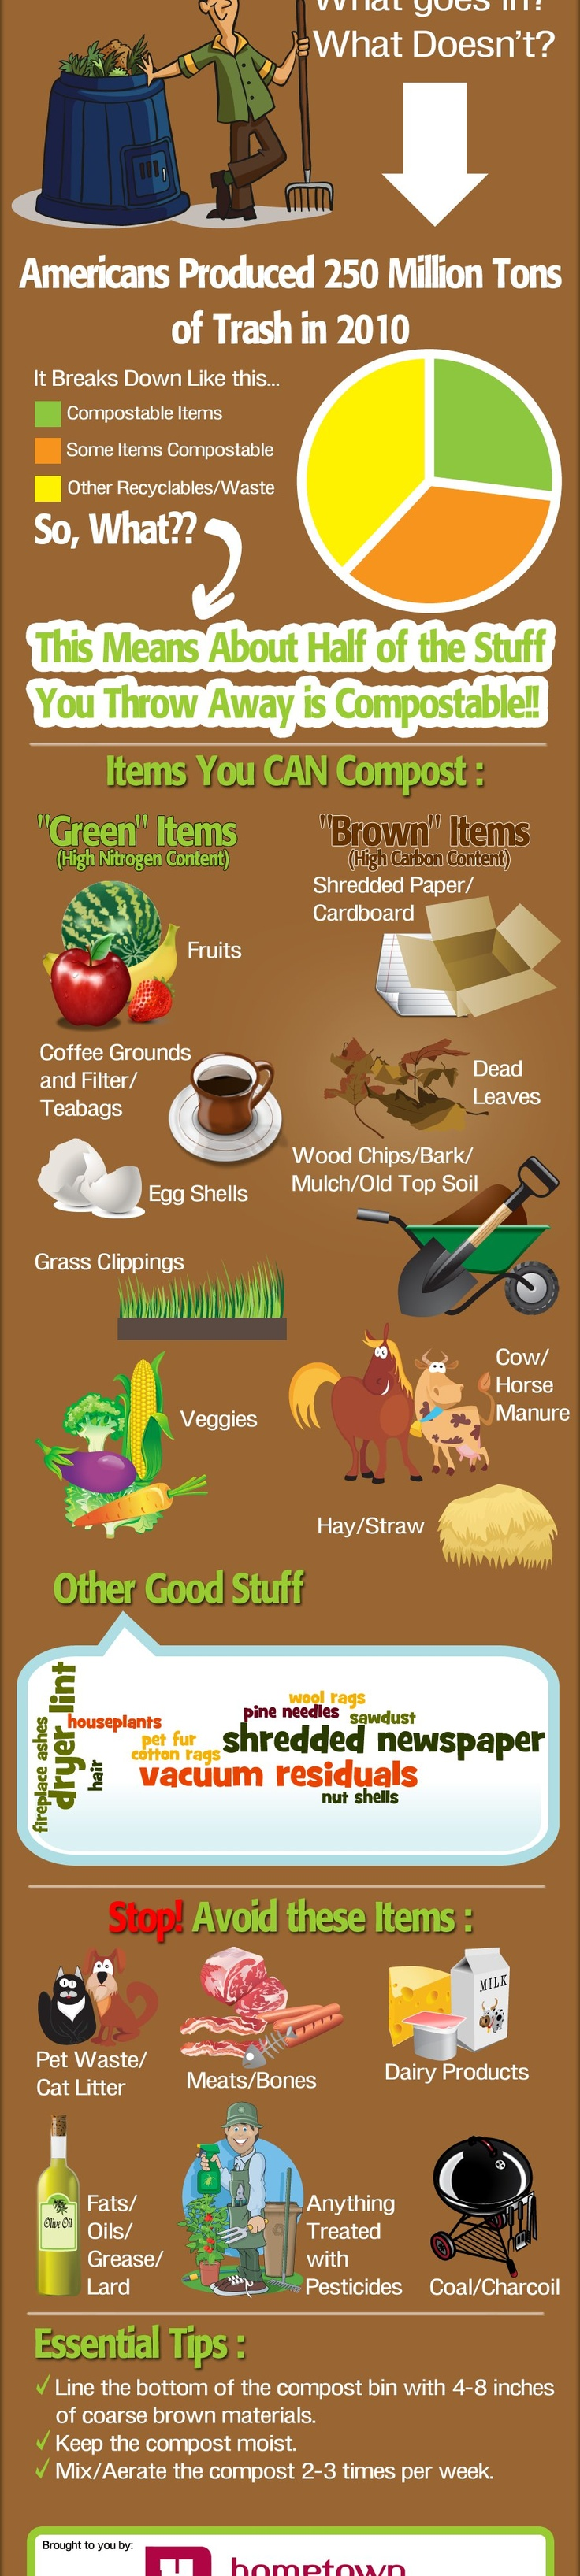 Composting 101 - helpful guide